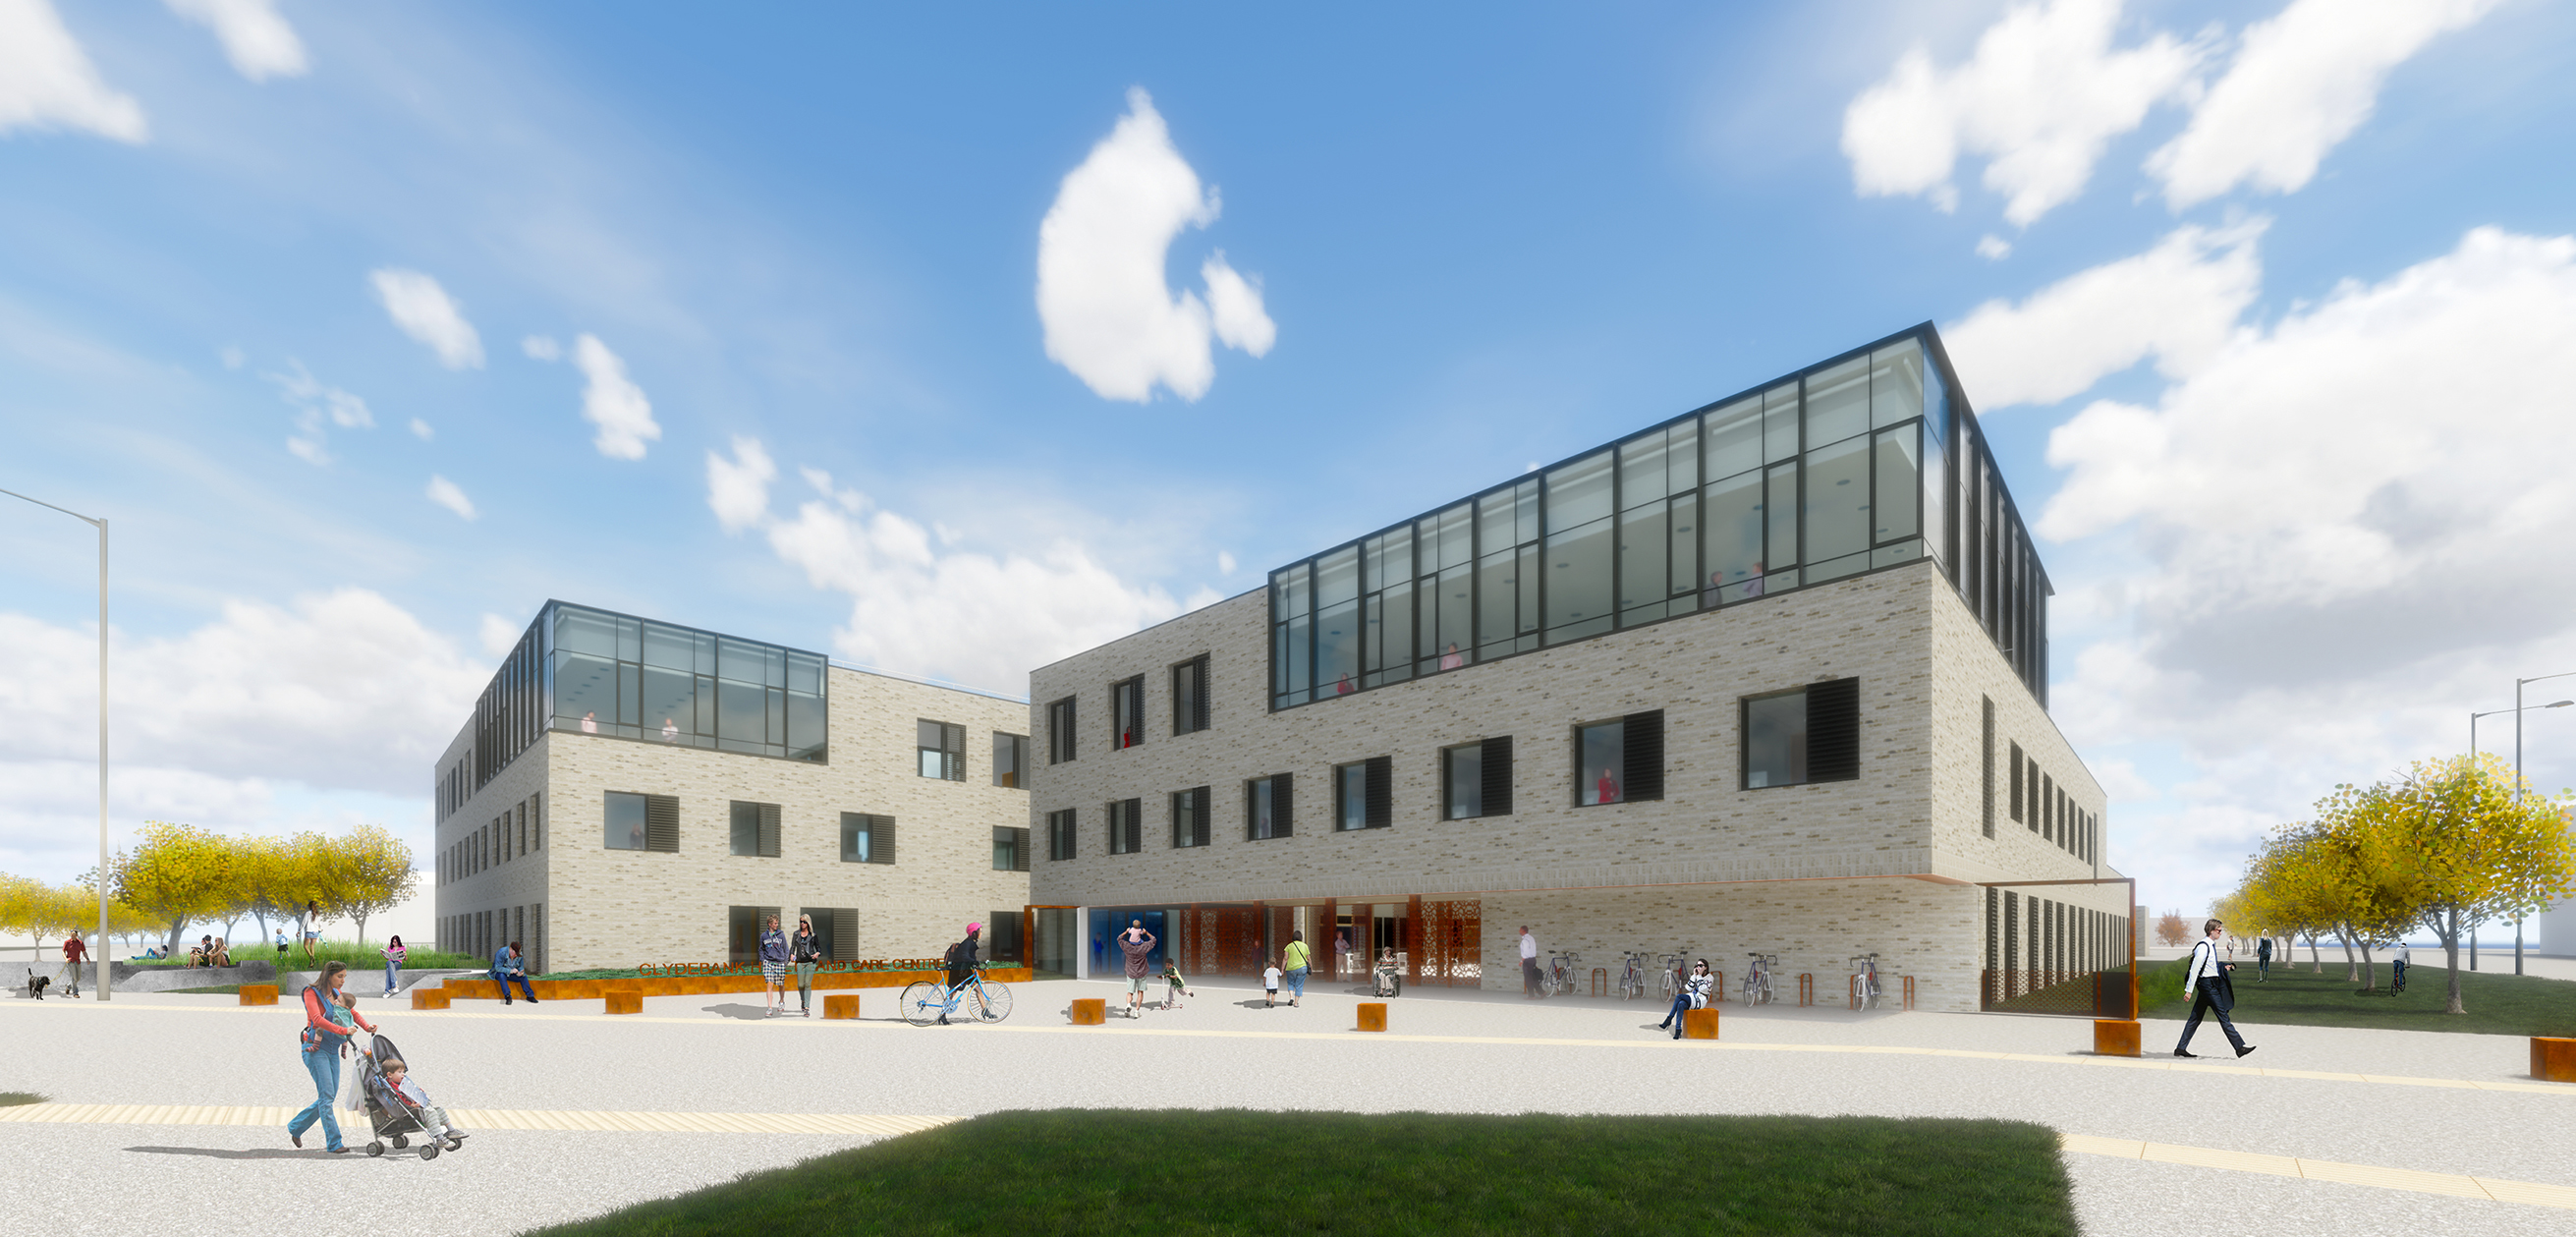 Council approves £19M Clydebank Health and Care Centre